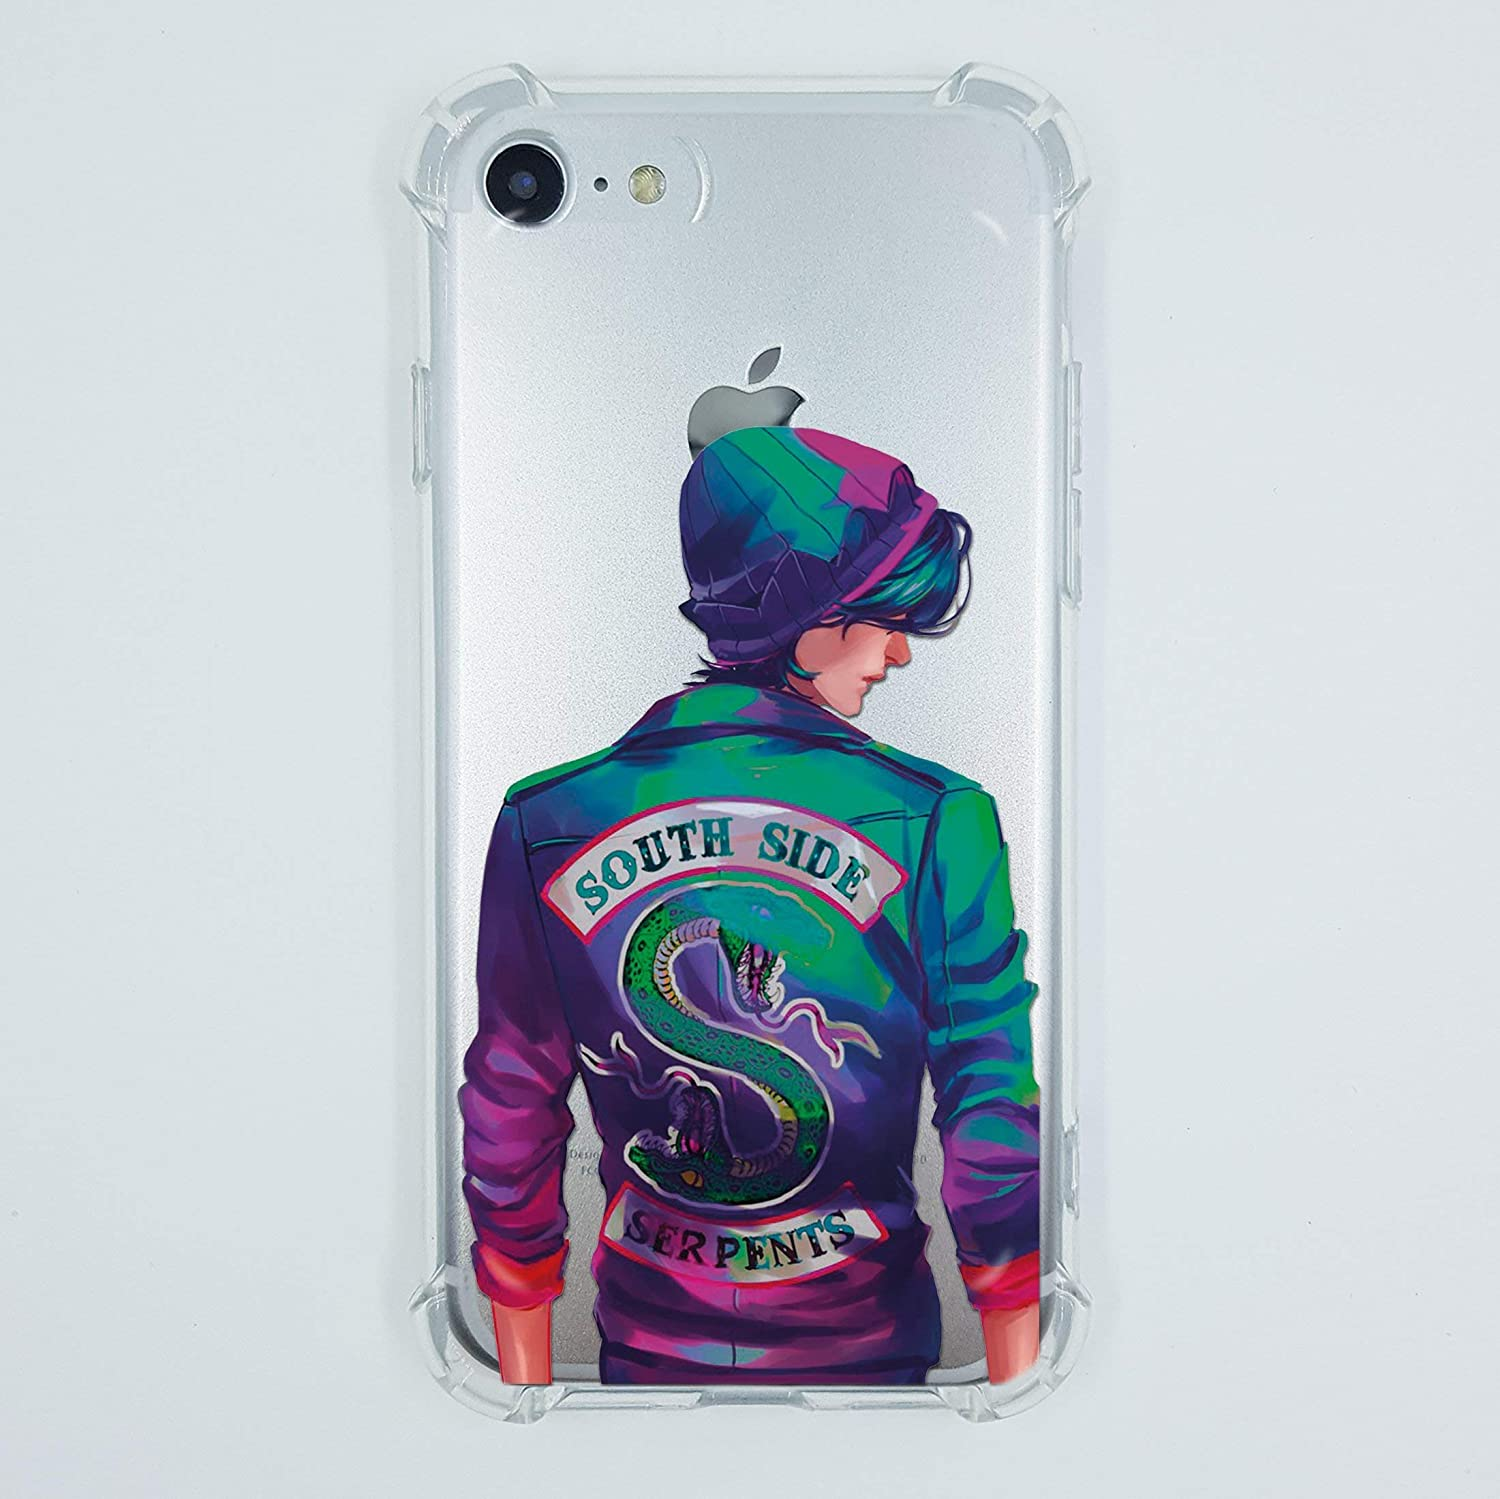 Riverdale iPhone 7 8 6 6s plus X Xs Max Xr 5 case Jughead Jones Southside Serpents Jacket Shirt sweatshirt patch gifts print Lifeproof Crystal Clear Shock Absorption Soft TPU Silicone Protective Cover